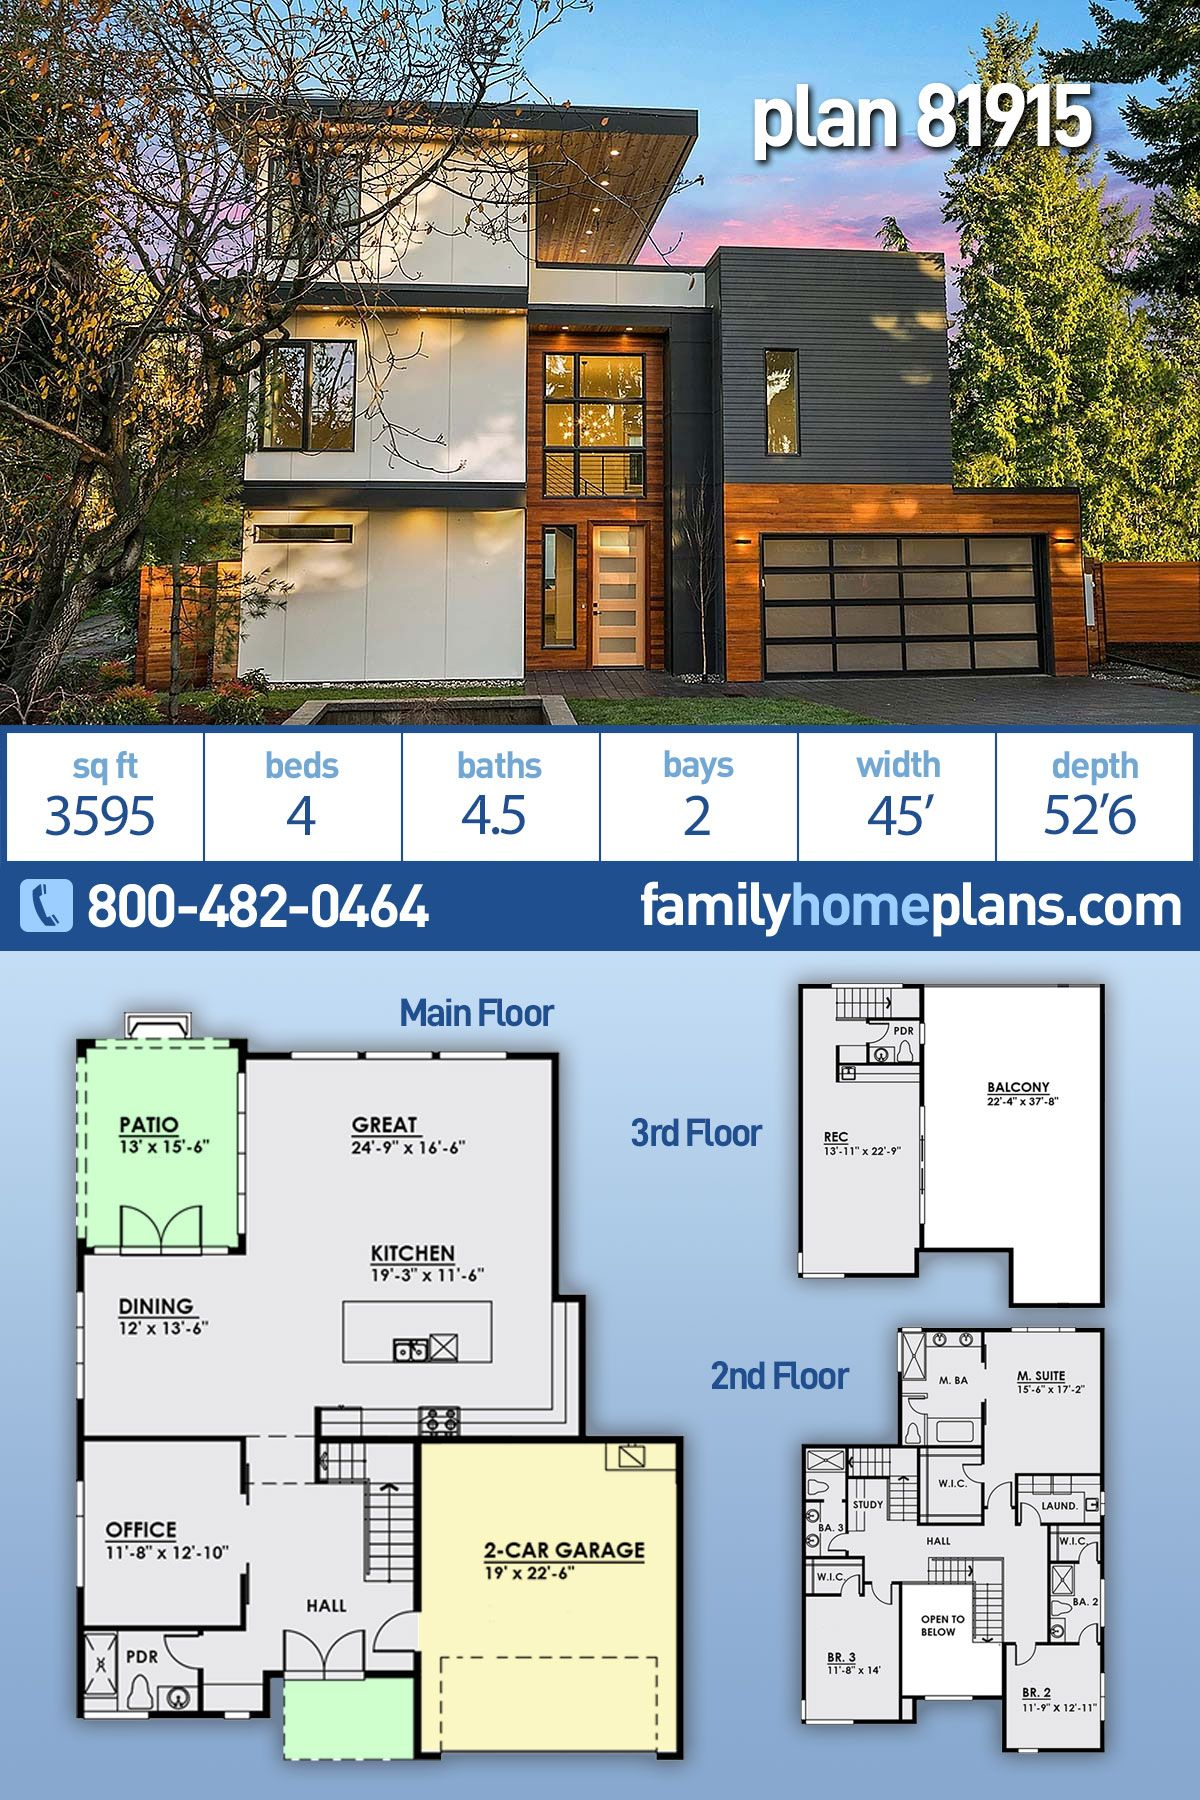 Modern Style House Plan 81915 With 4 Bed 5 Bath 2 Car Garage Modern Style House Plans Modern House Plans Small House Design Architecture